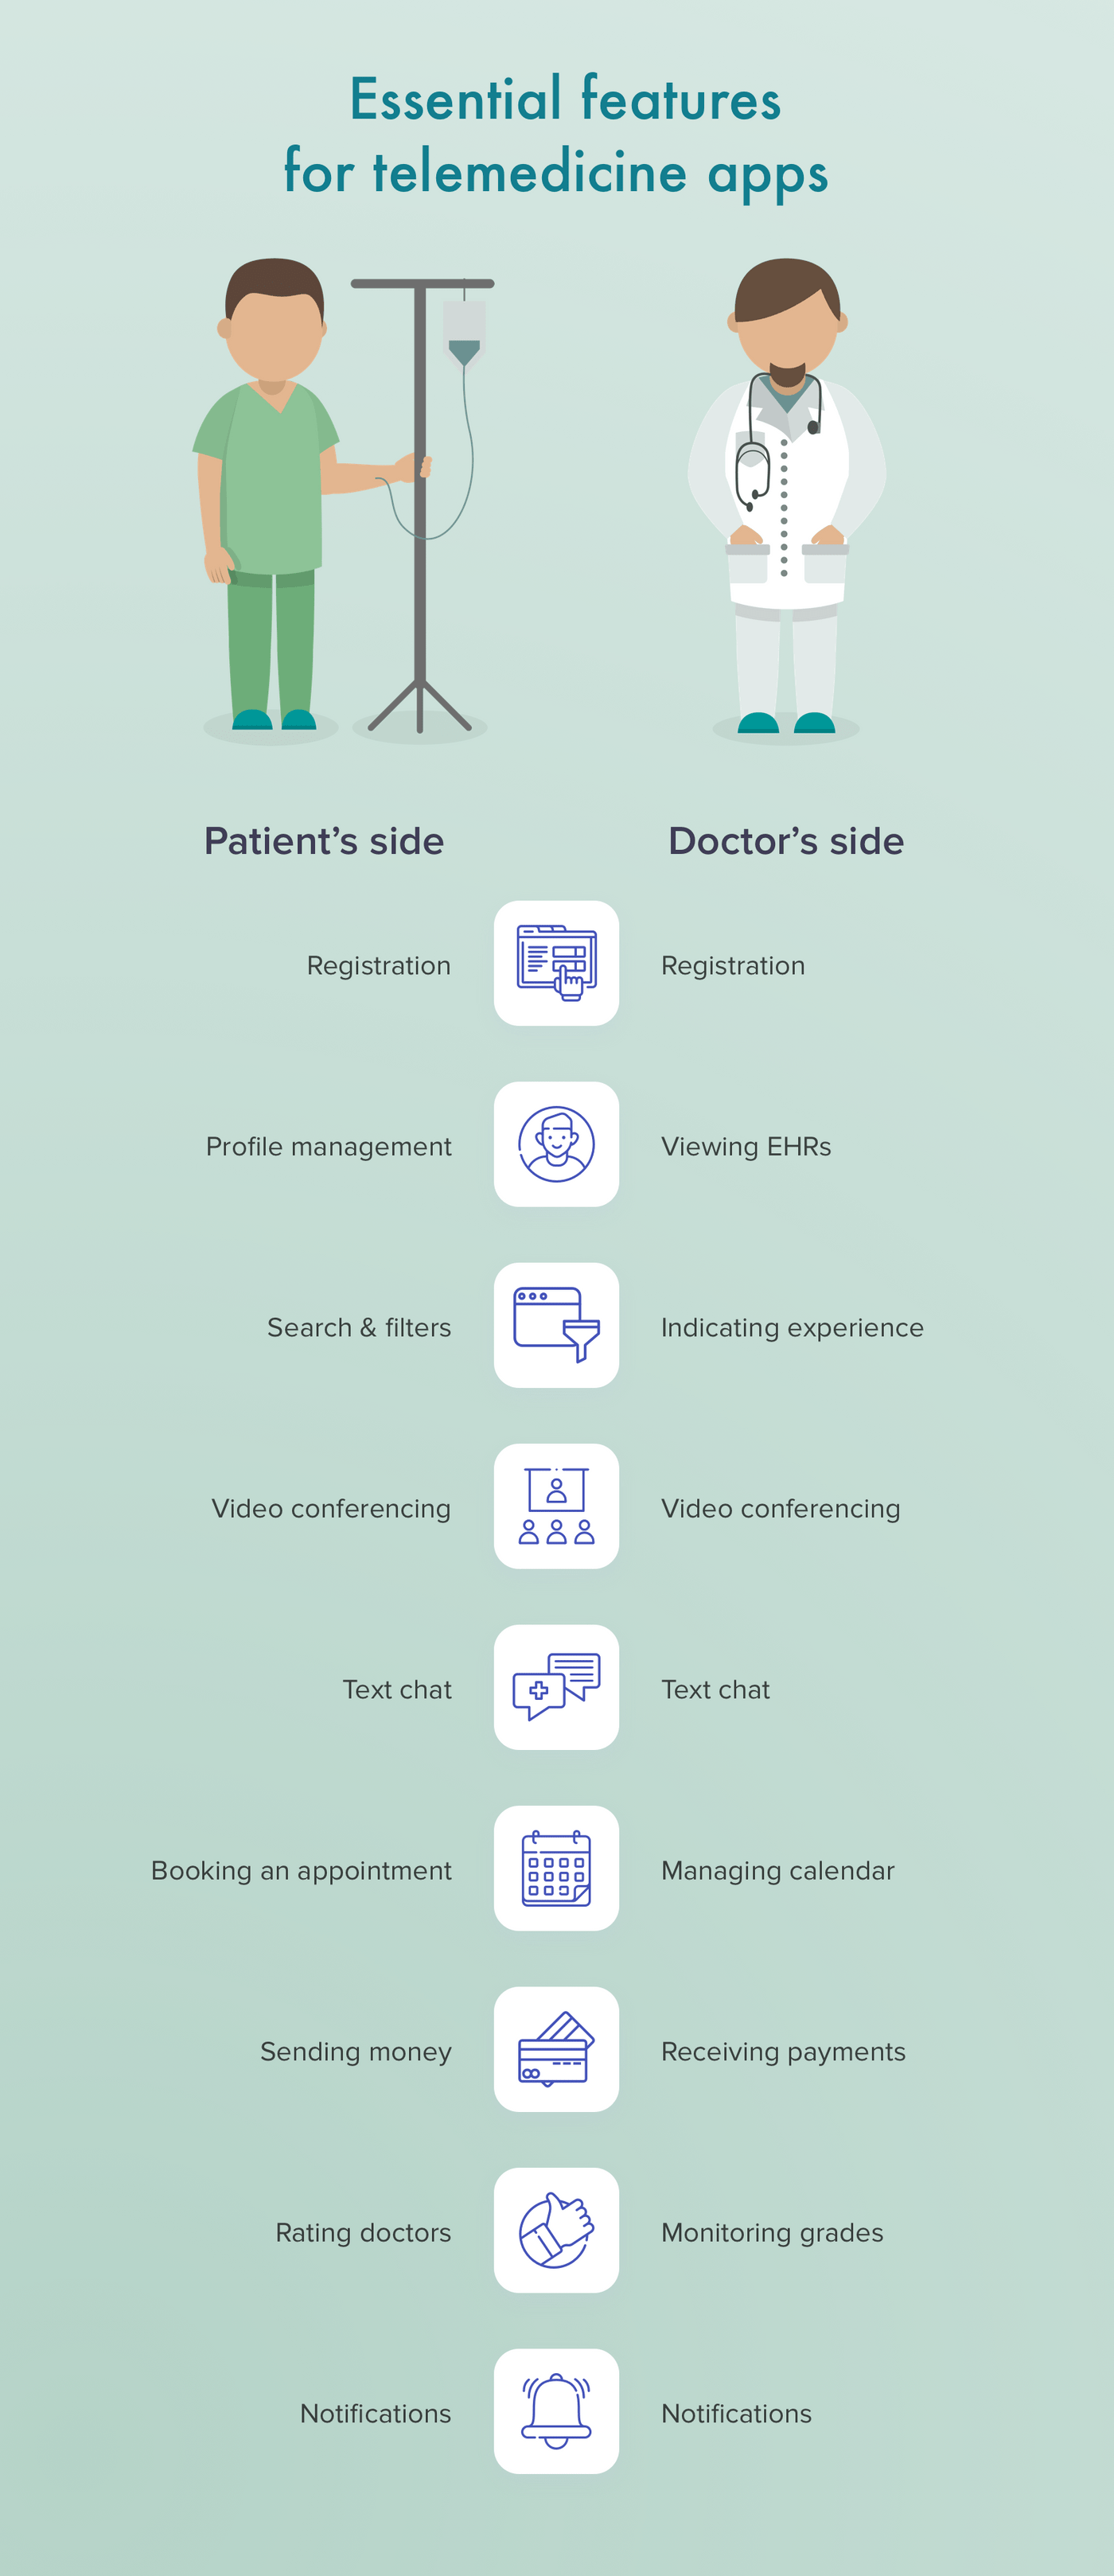 How to develop a telemedicine app with MVP features